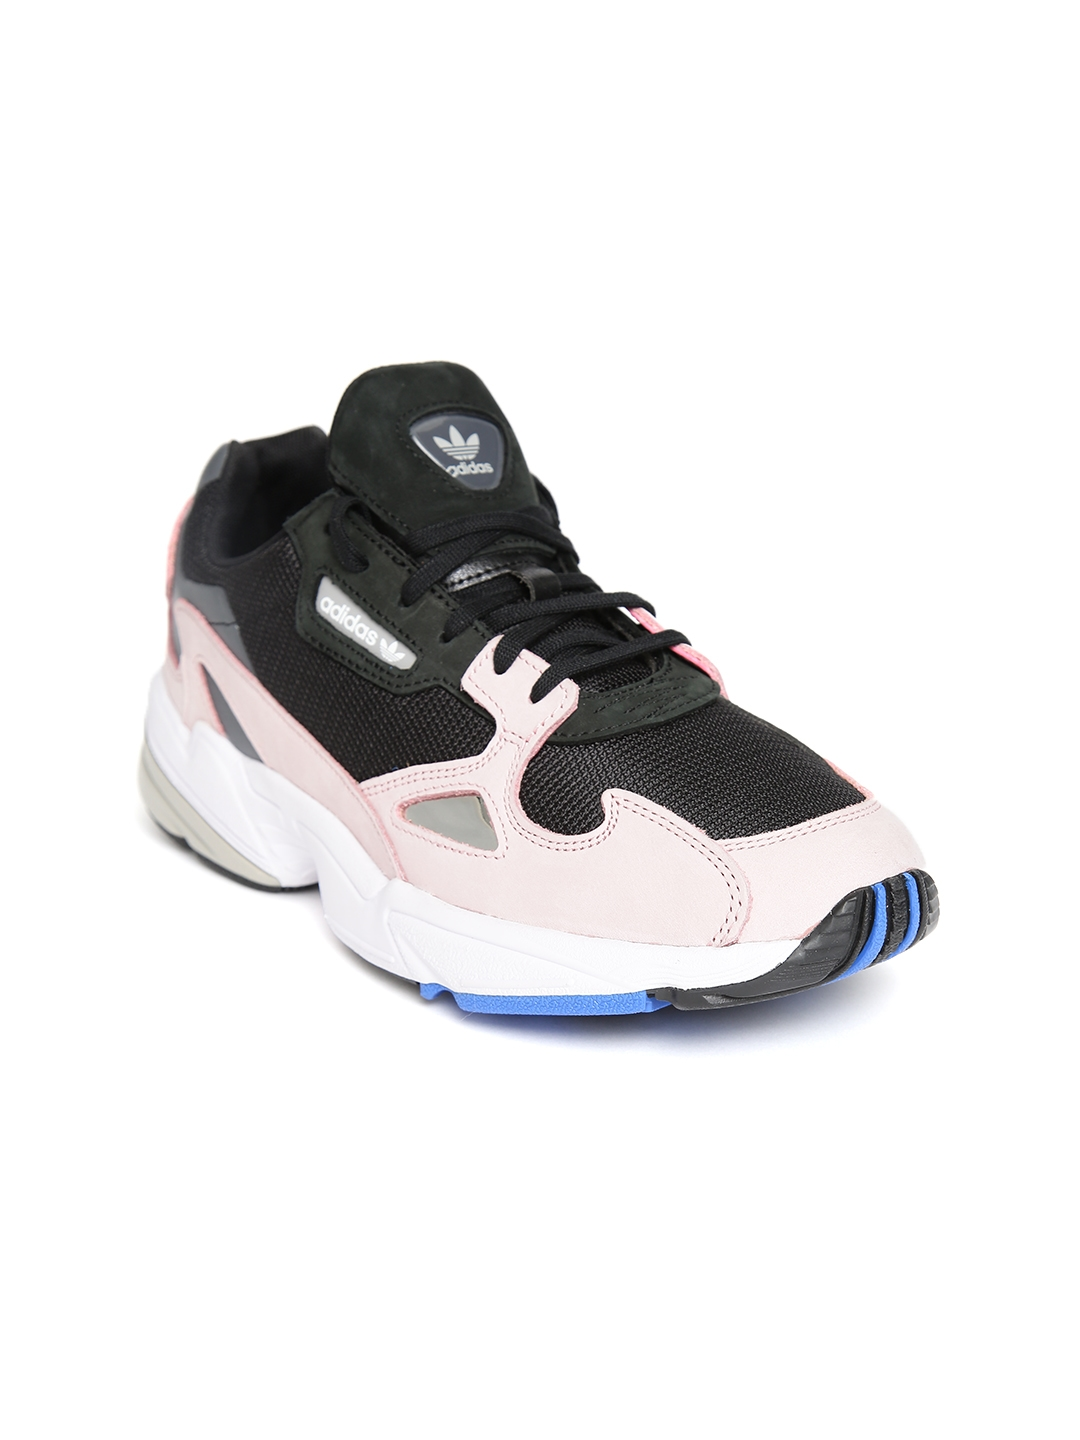 aba8d609cca39f ADIDAS Originals Women Black & Pink Colourblocked Falcon Sneakers